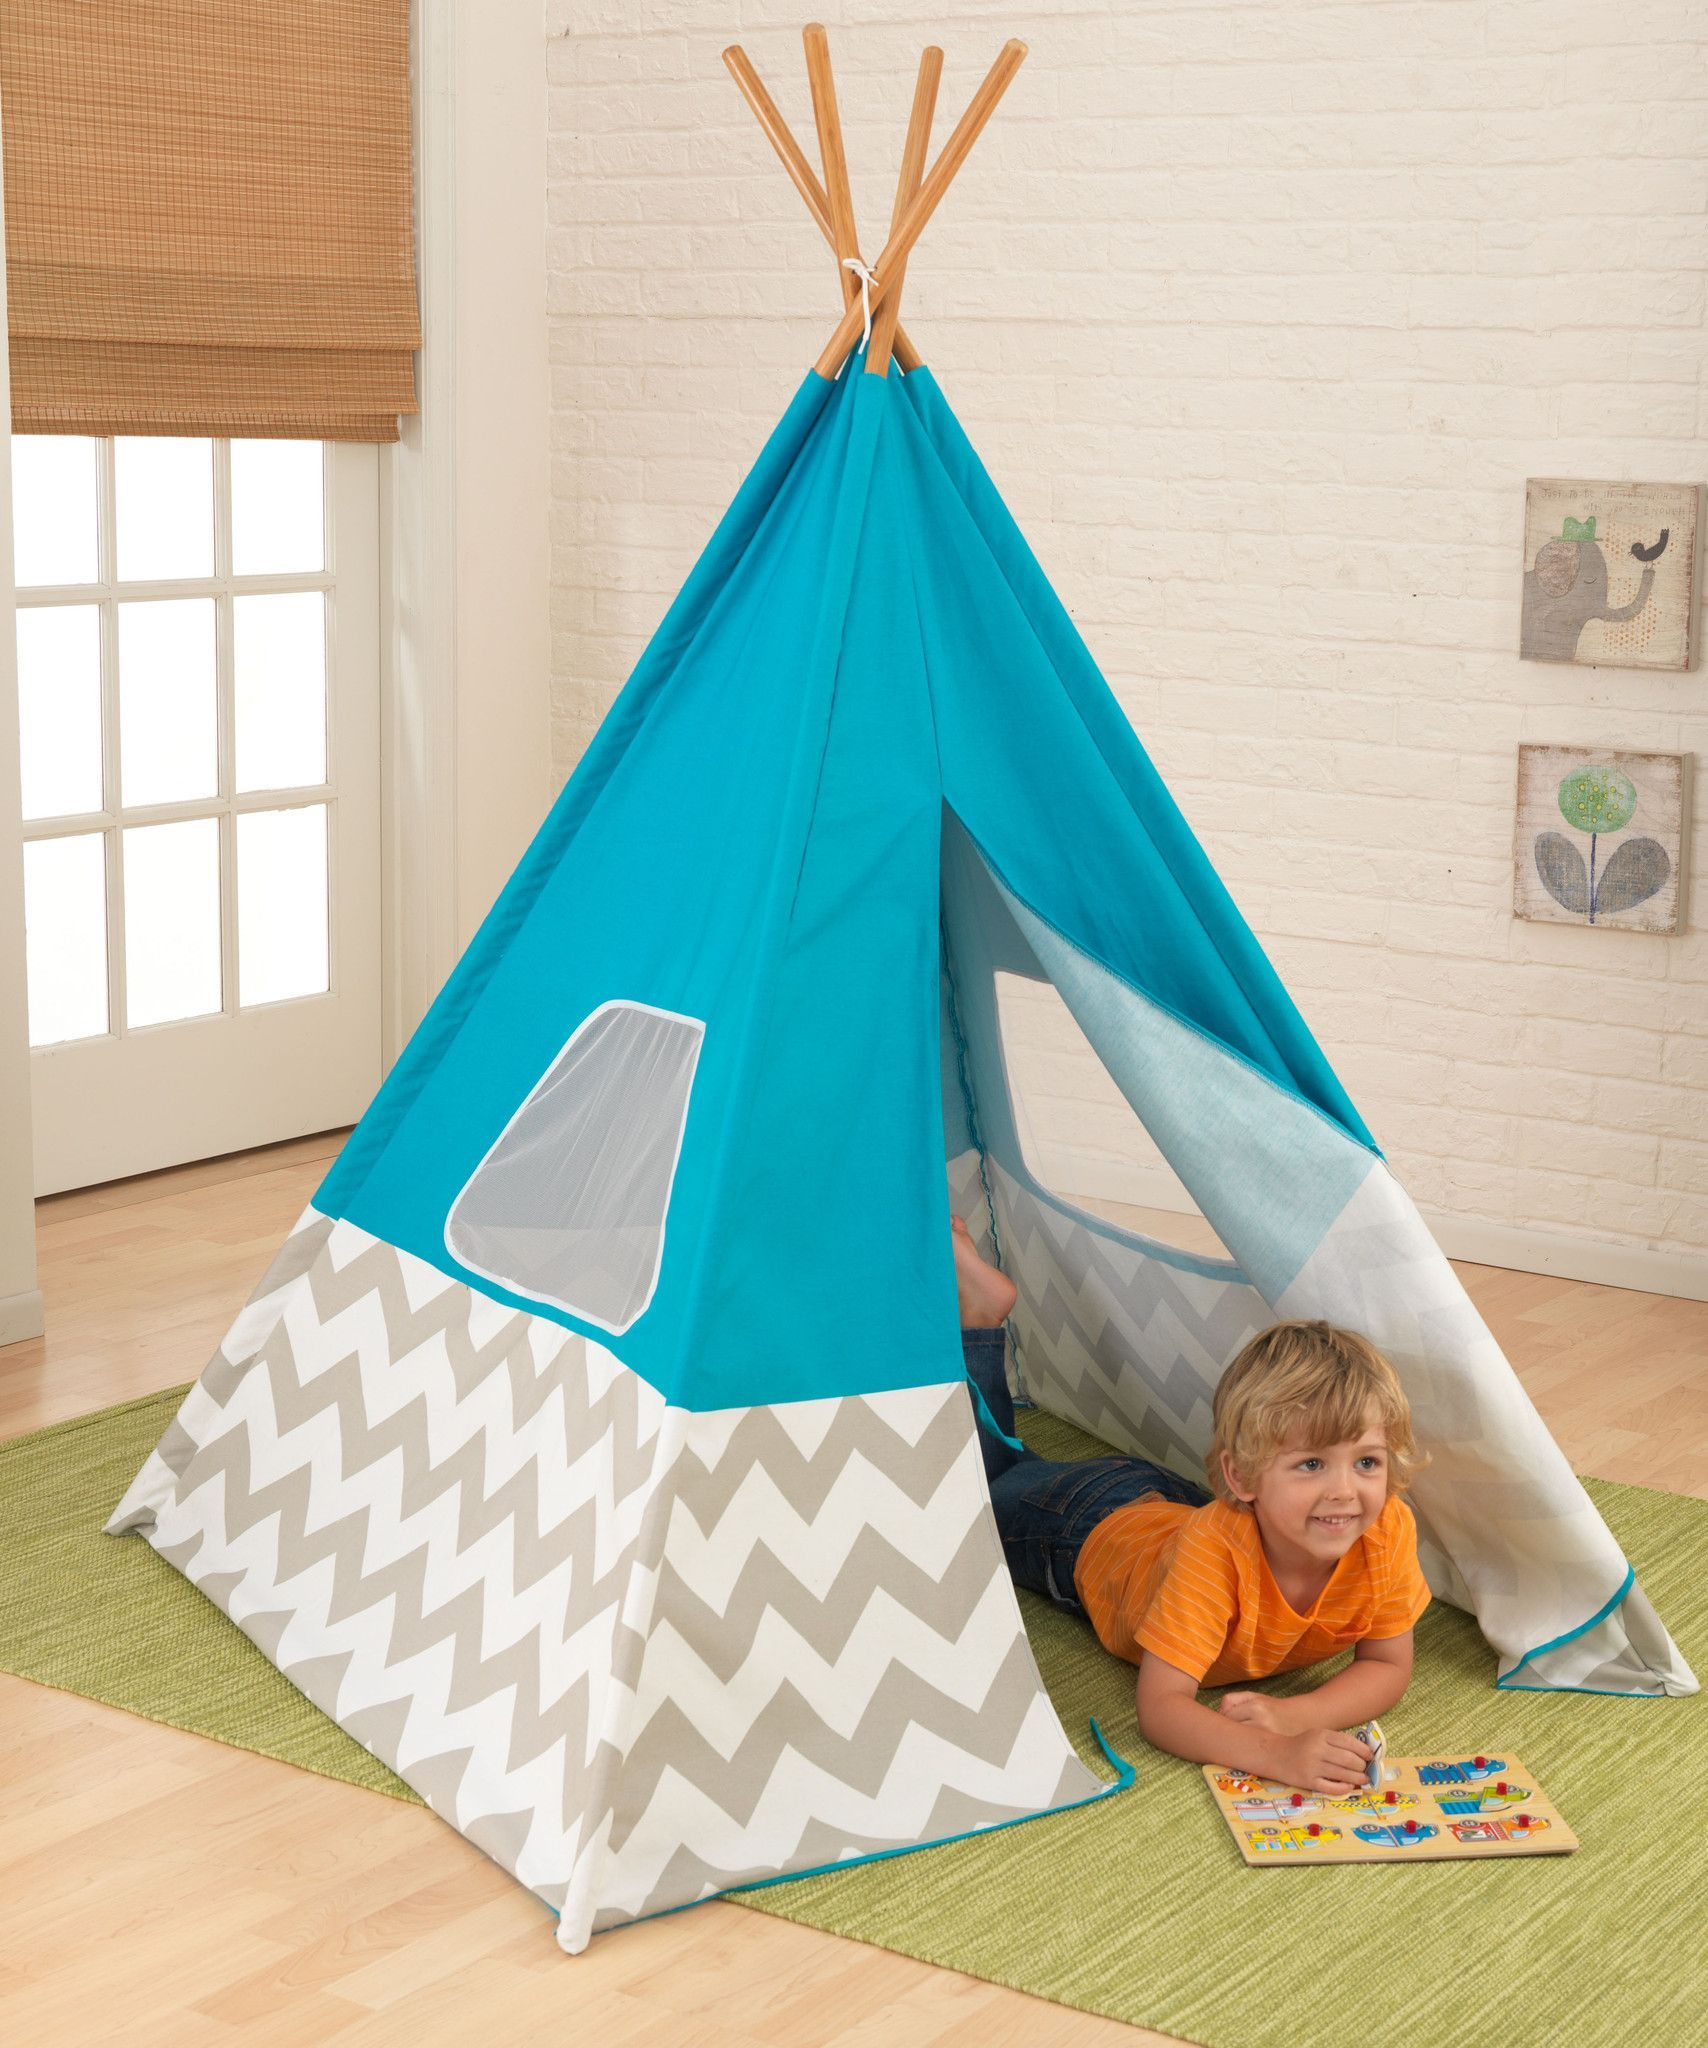 Have indoor or outdoor fun with the Discovery Kids Adventure Play TeePee Tent that easily sets up in minutes! Tent stands over feet tall! & Turquoise Teepee with Gray u0026 White Chevron | Products | Pinterest ...